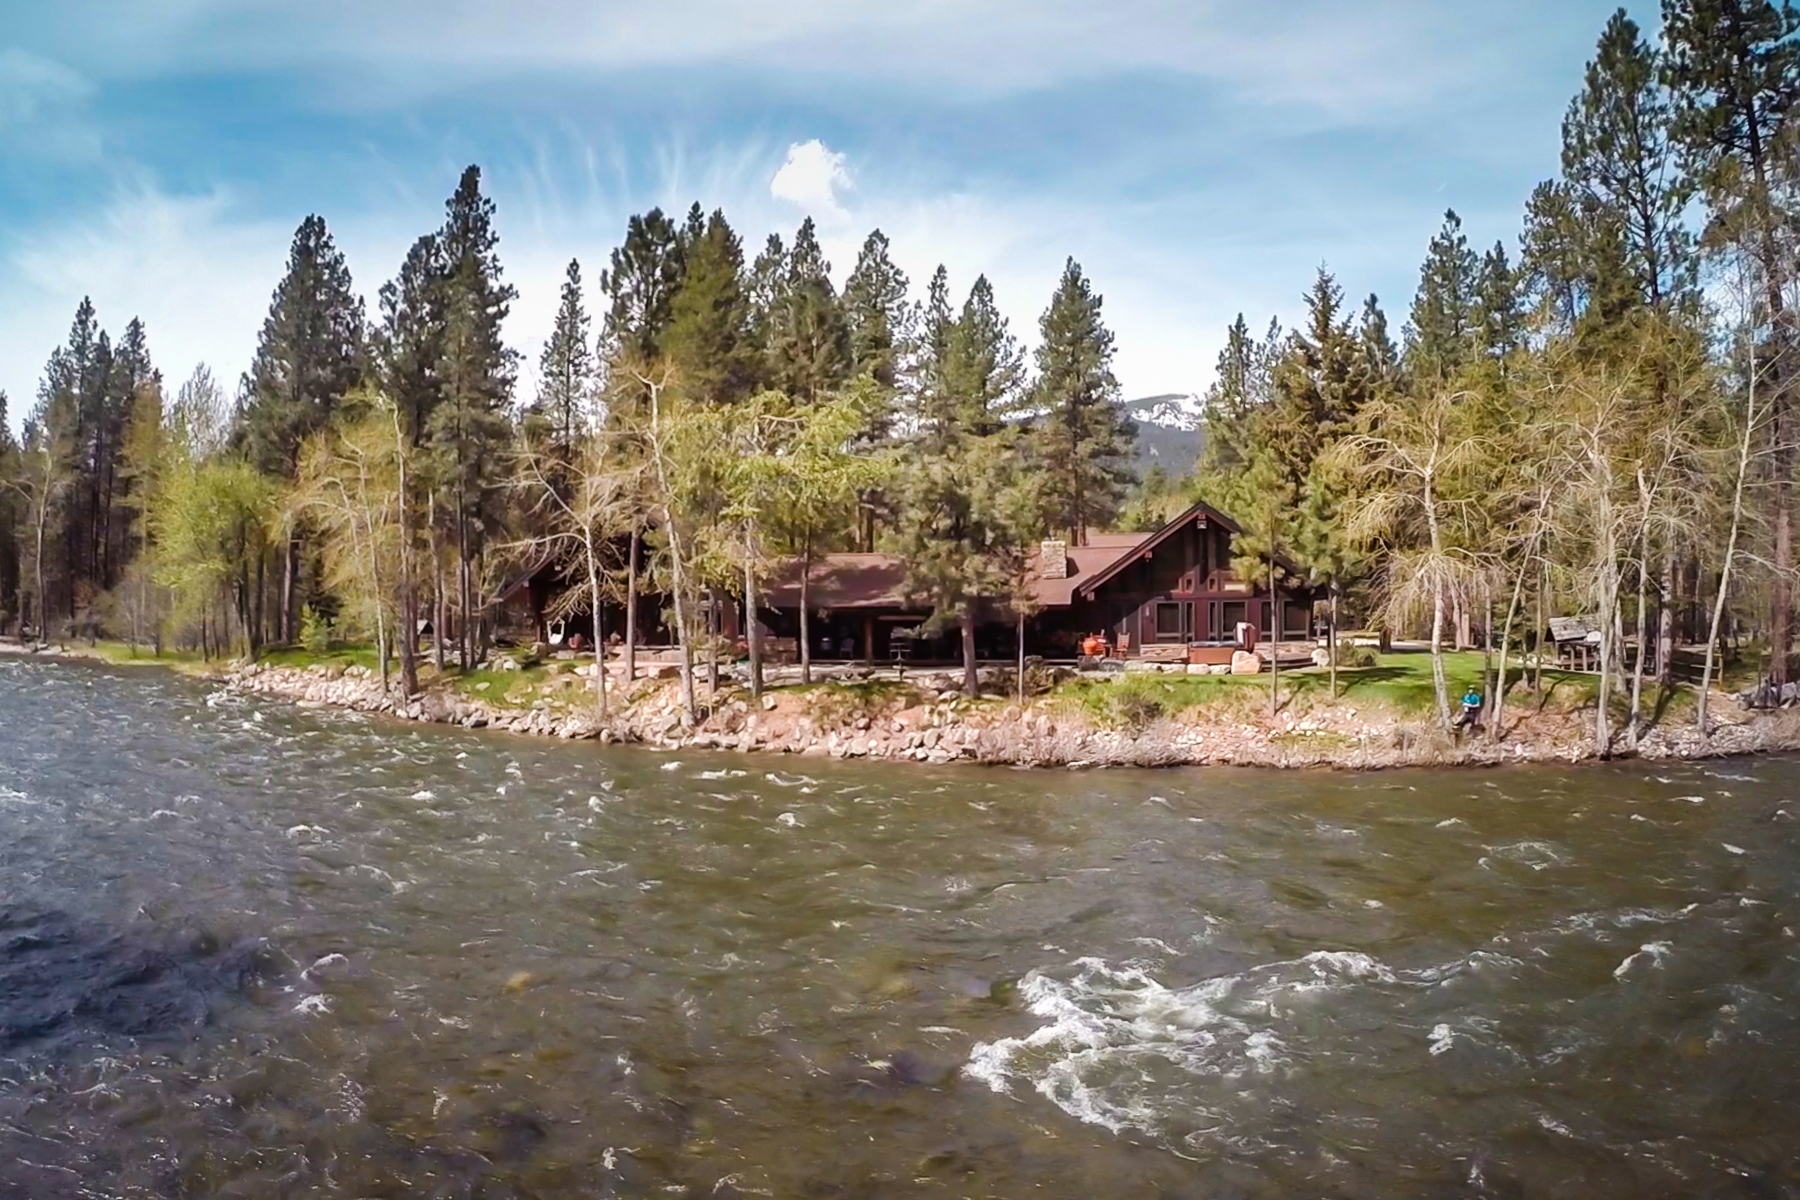 Single Family Home for Sale at 5492 West Fork Road 5492 West Fork Rd, Darby, Montana, 59829 United States